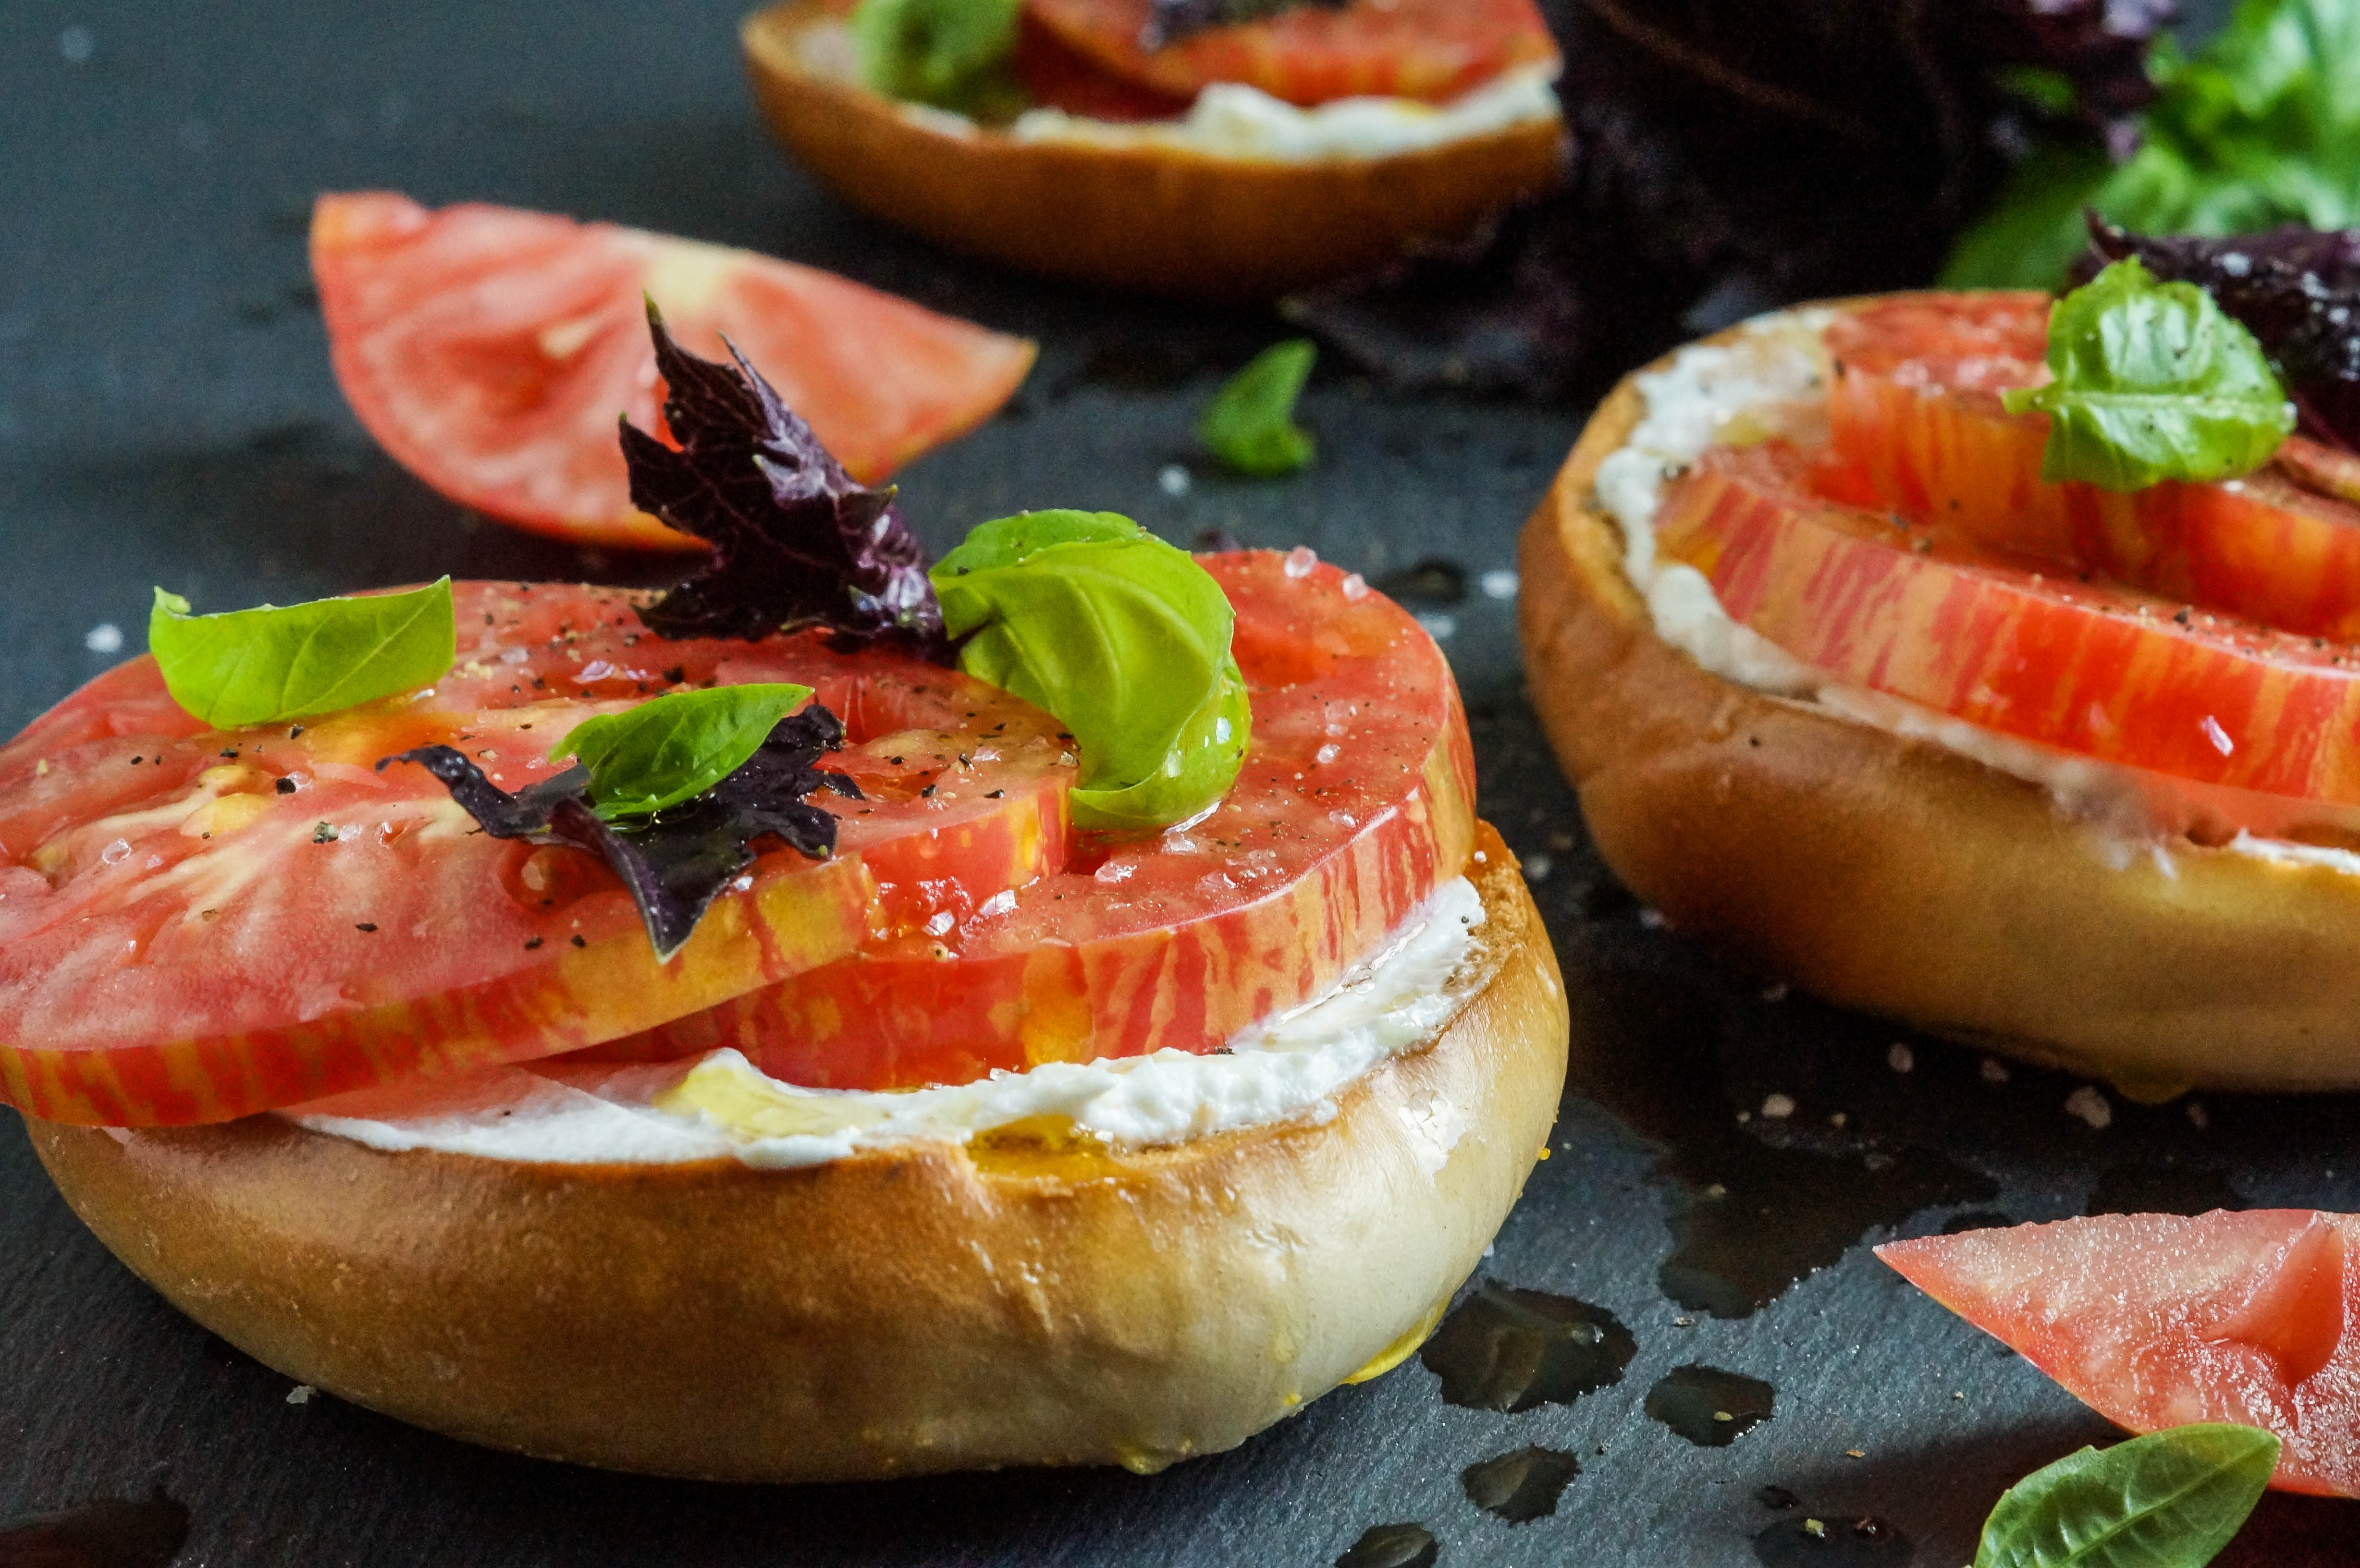 Crisp Toasted Bagel with Fromage Blanc, Tomato, Seas Salt, and Basil (1 of 3)